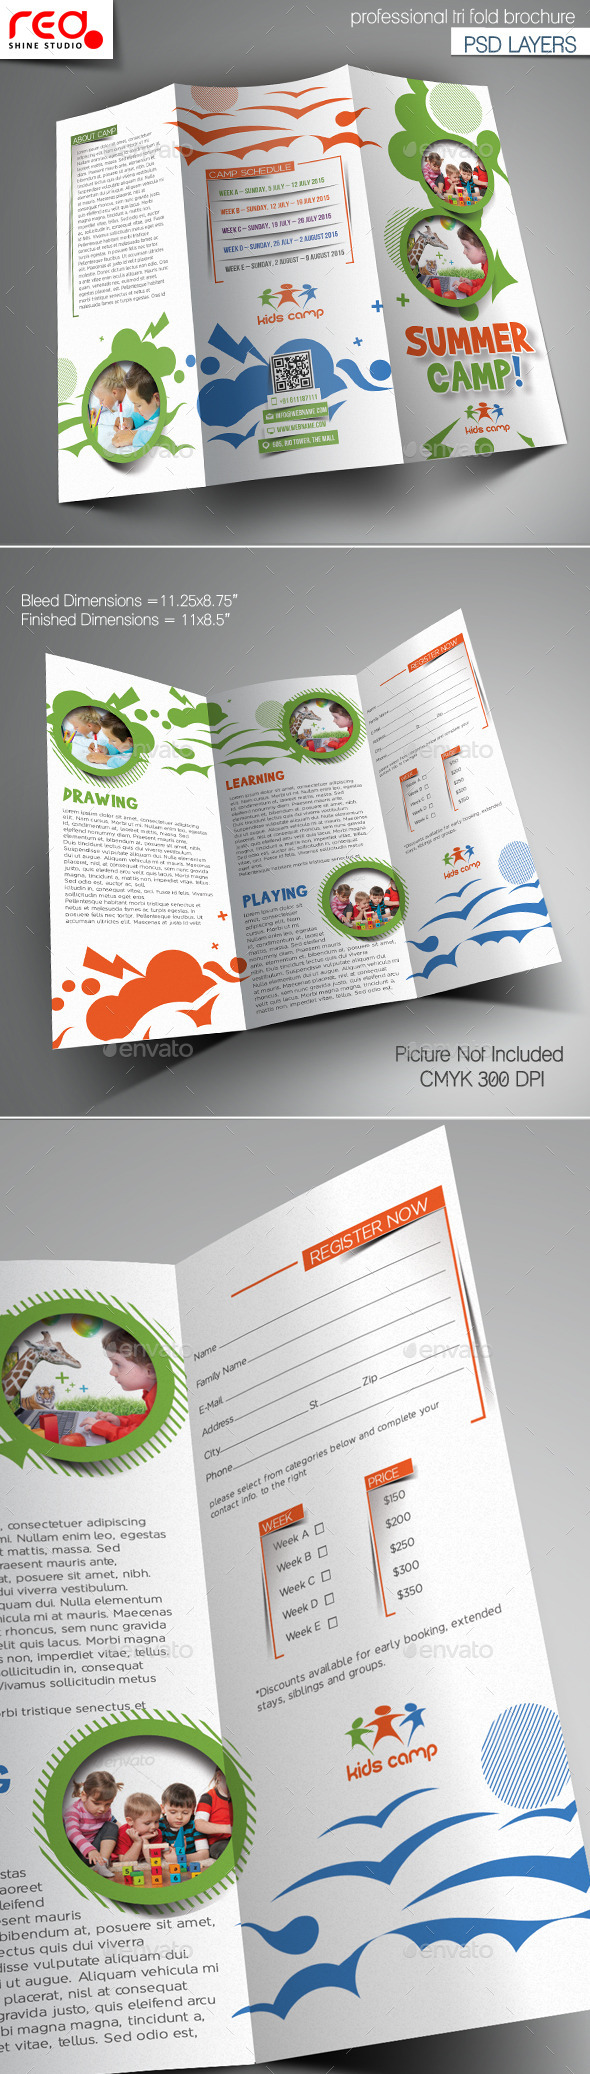 GraphicRiver Summer Camp Trifold Brochure Template 10551149